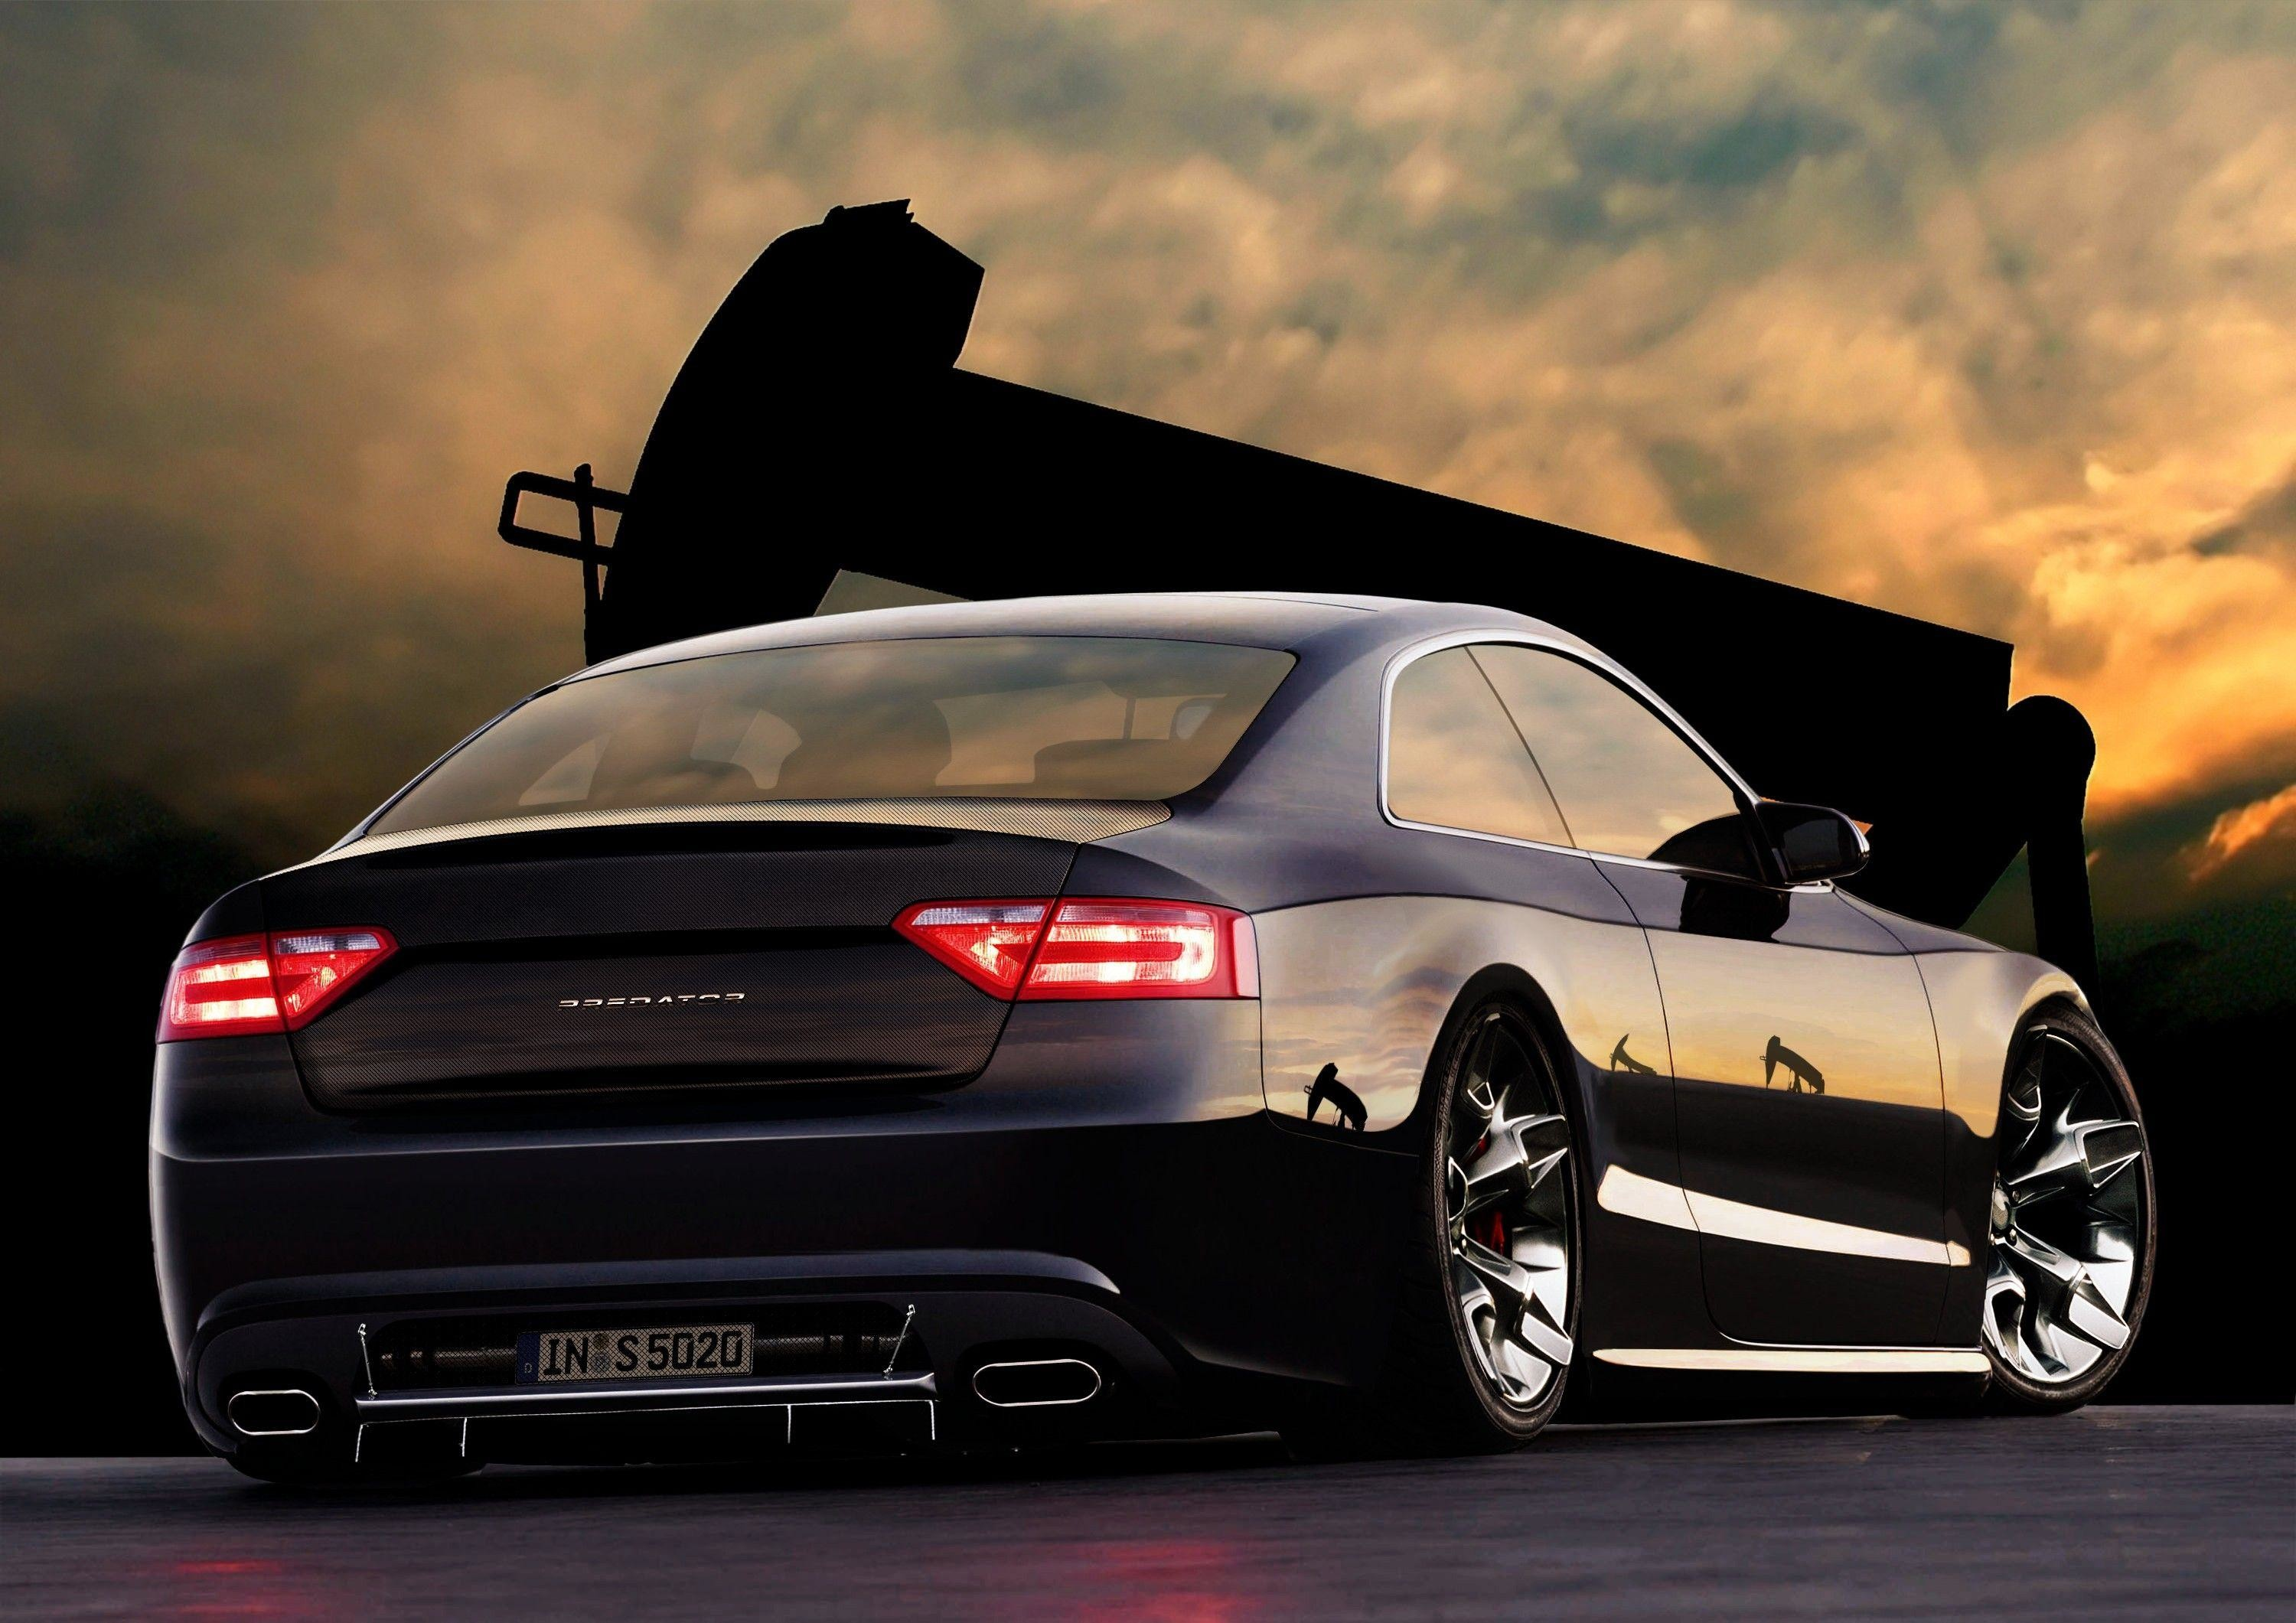 Res: 3000x2121, Nothing found for Audi S5 Wallpaper Hd